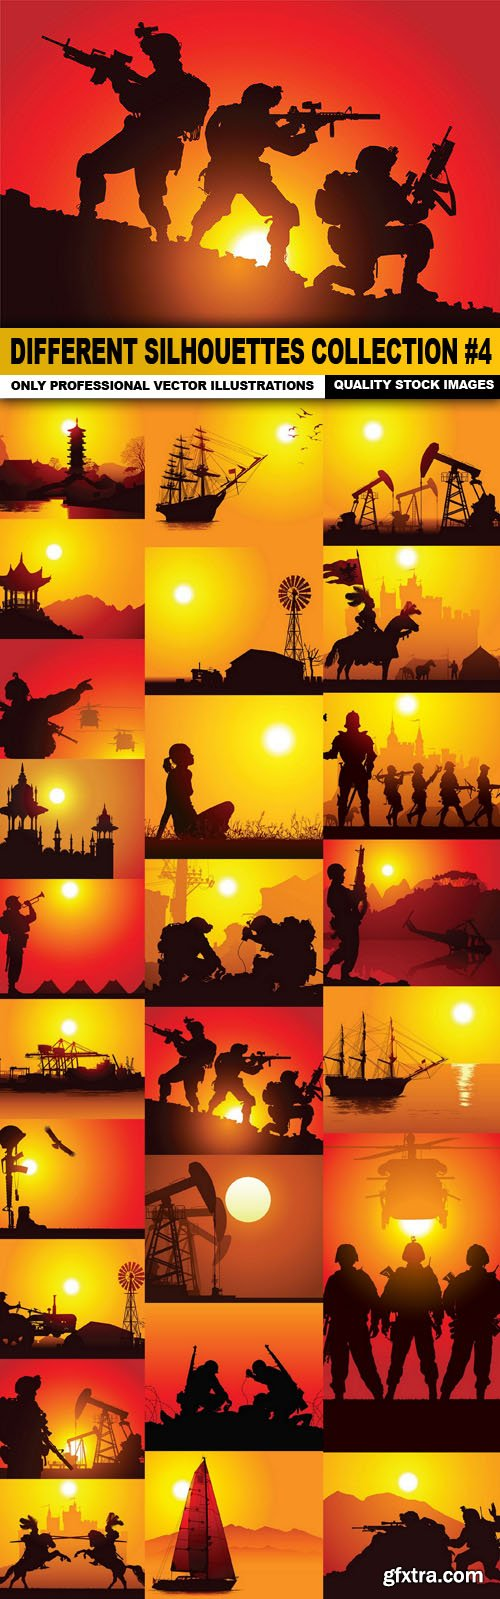 Different Silhouettes Collection #4 - 25 Vector